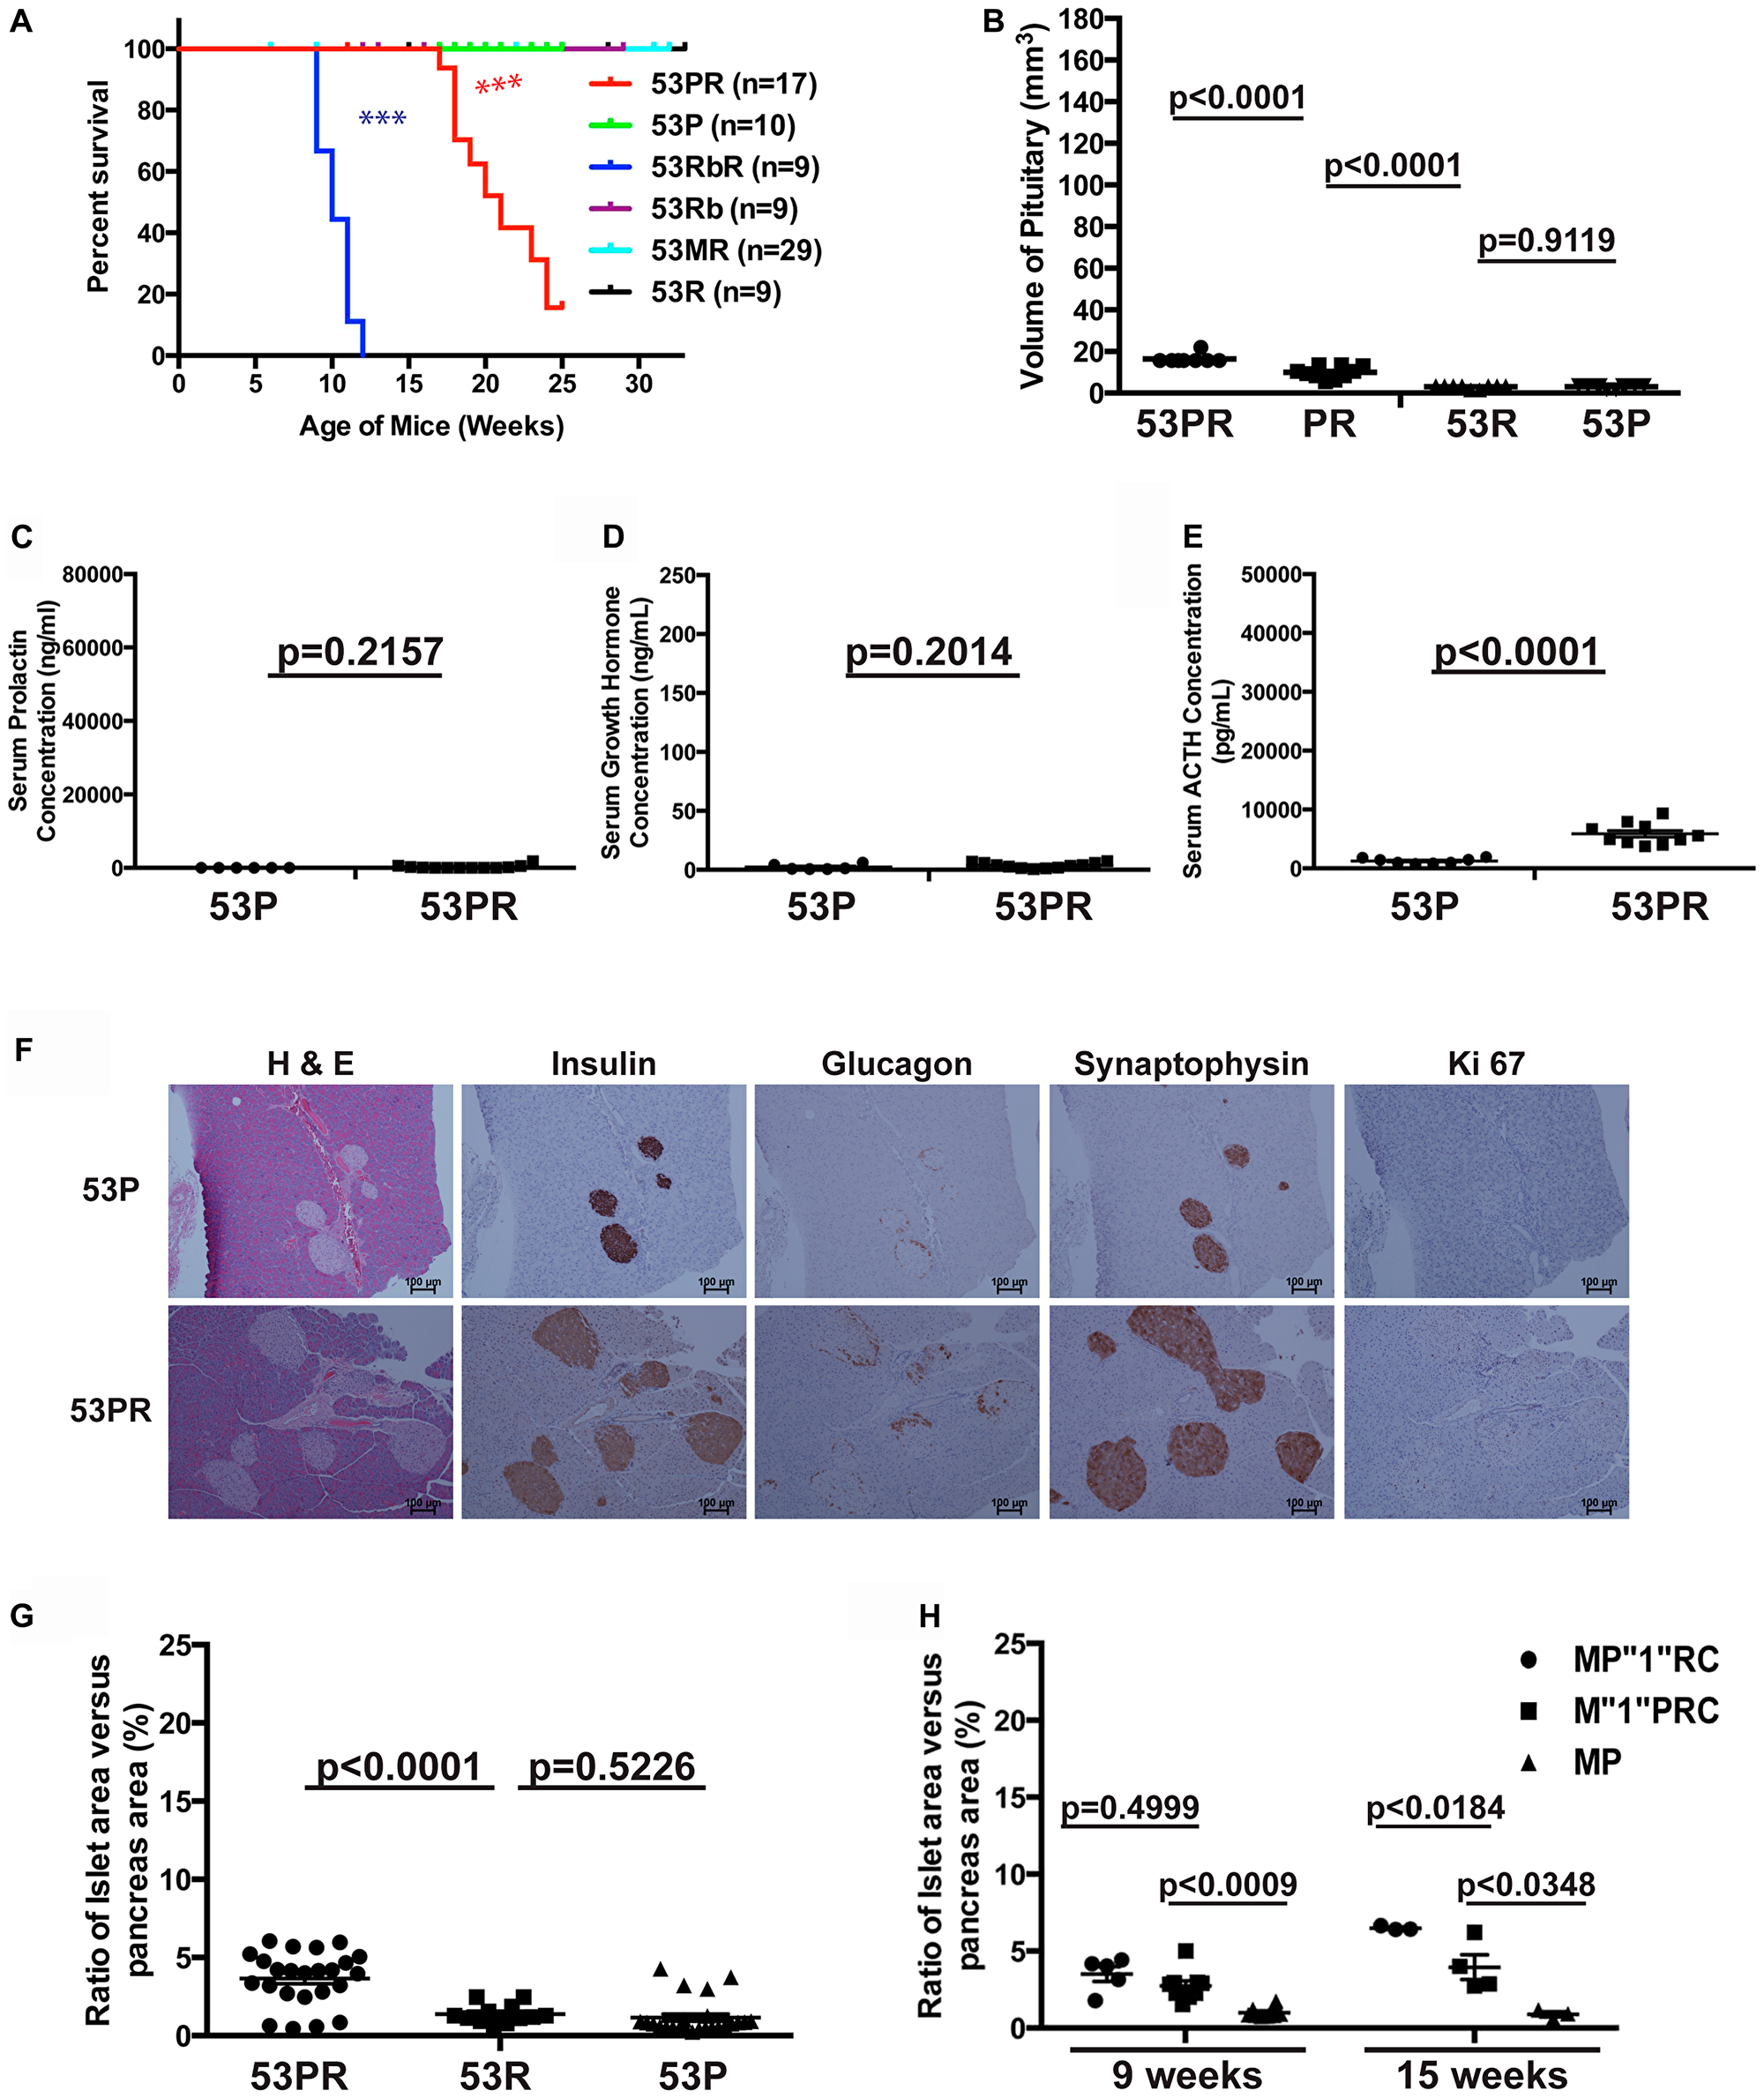 Trp53 and Pten had weak cooperative function in suppressing pituitary growth.